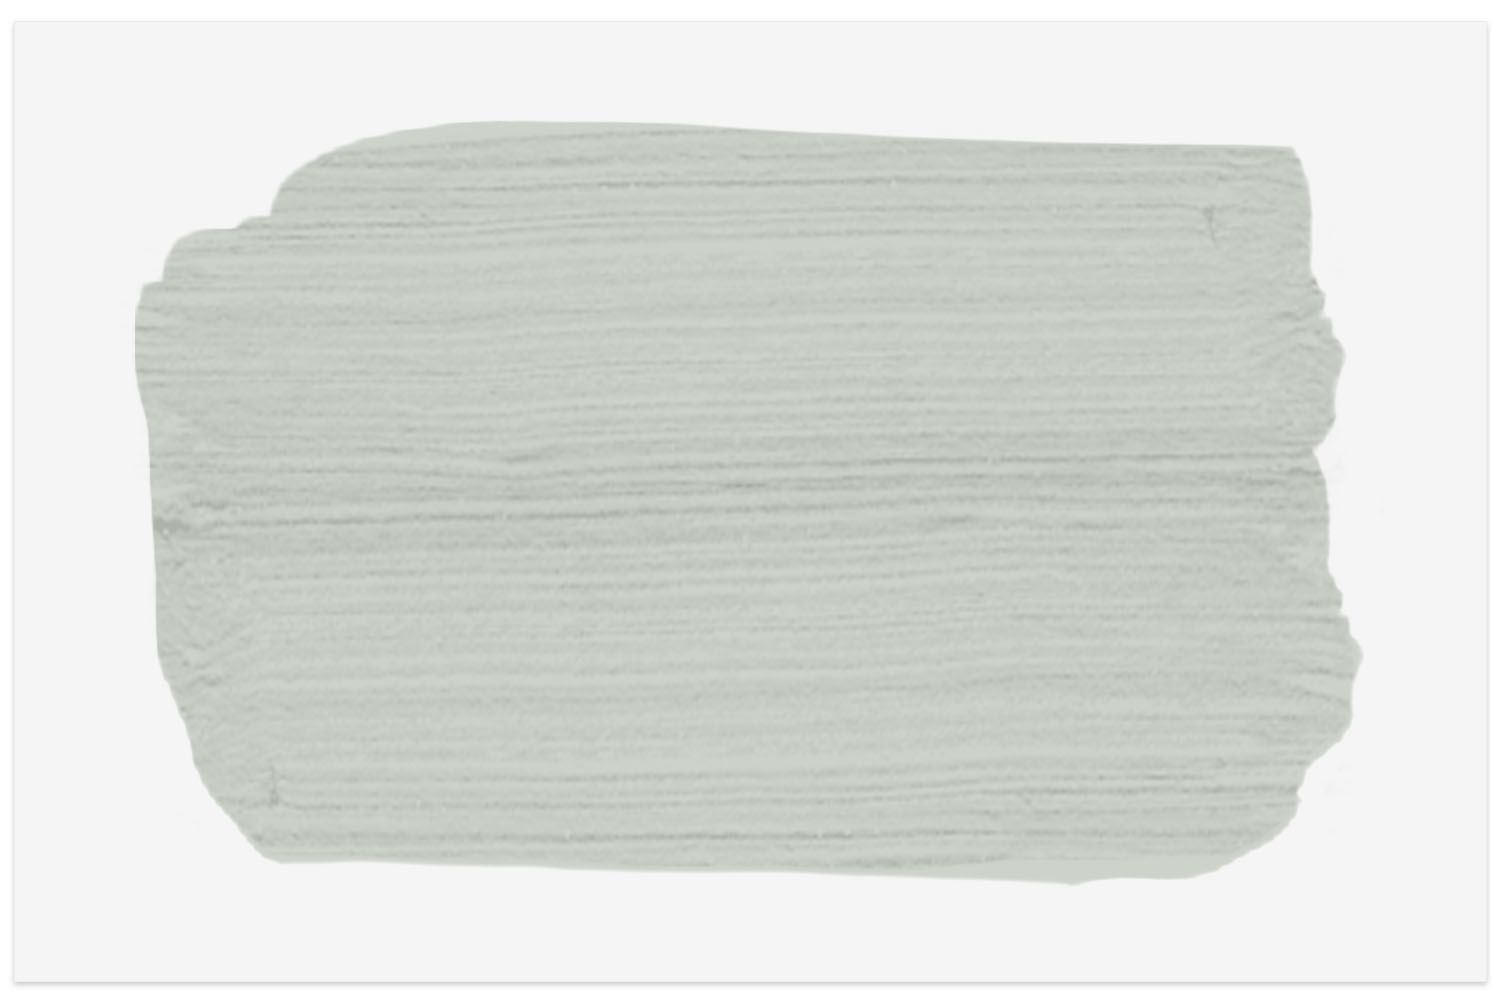 Sea Salt paint swatch from Sherwin-Williams